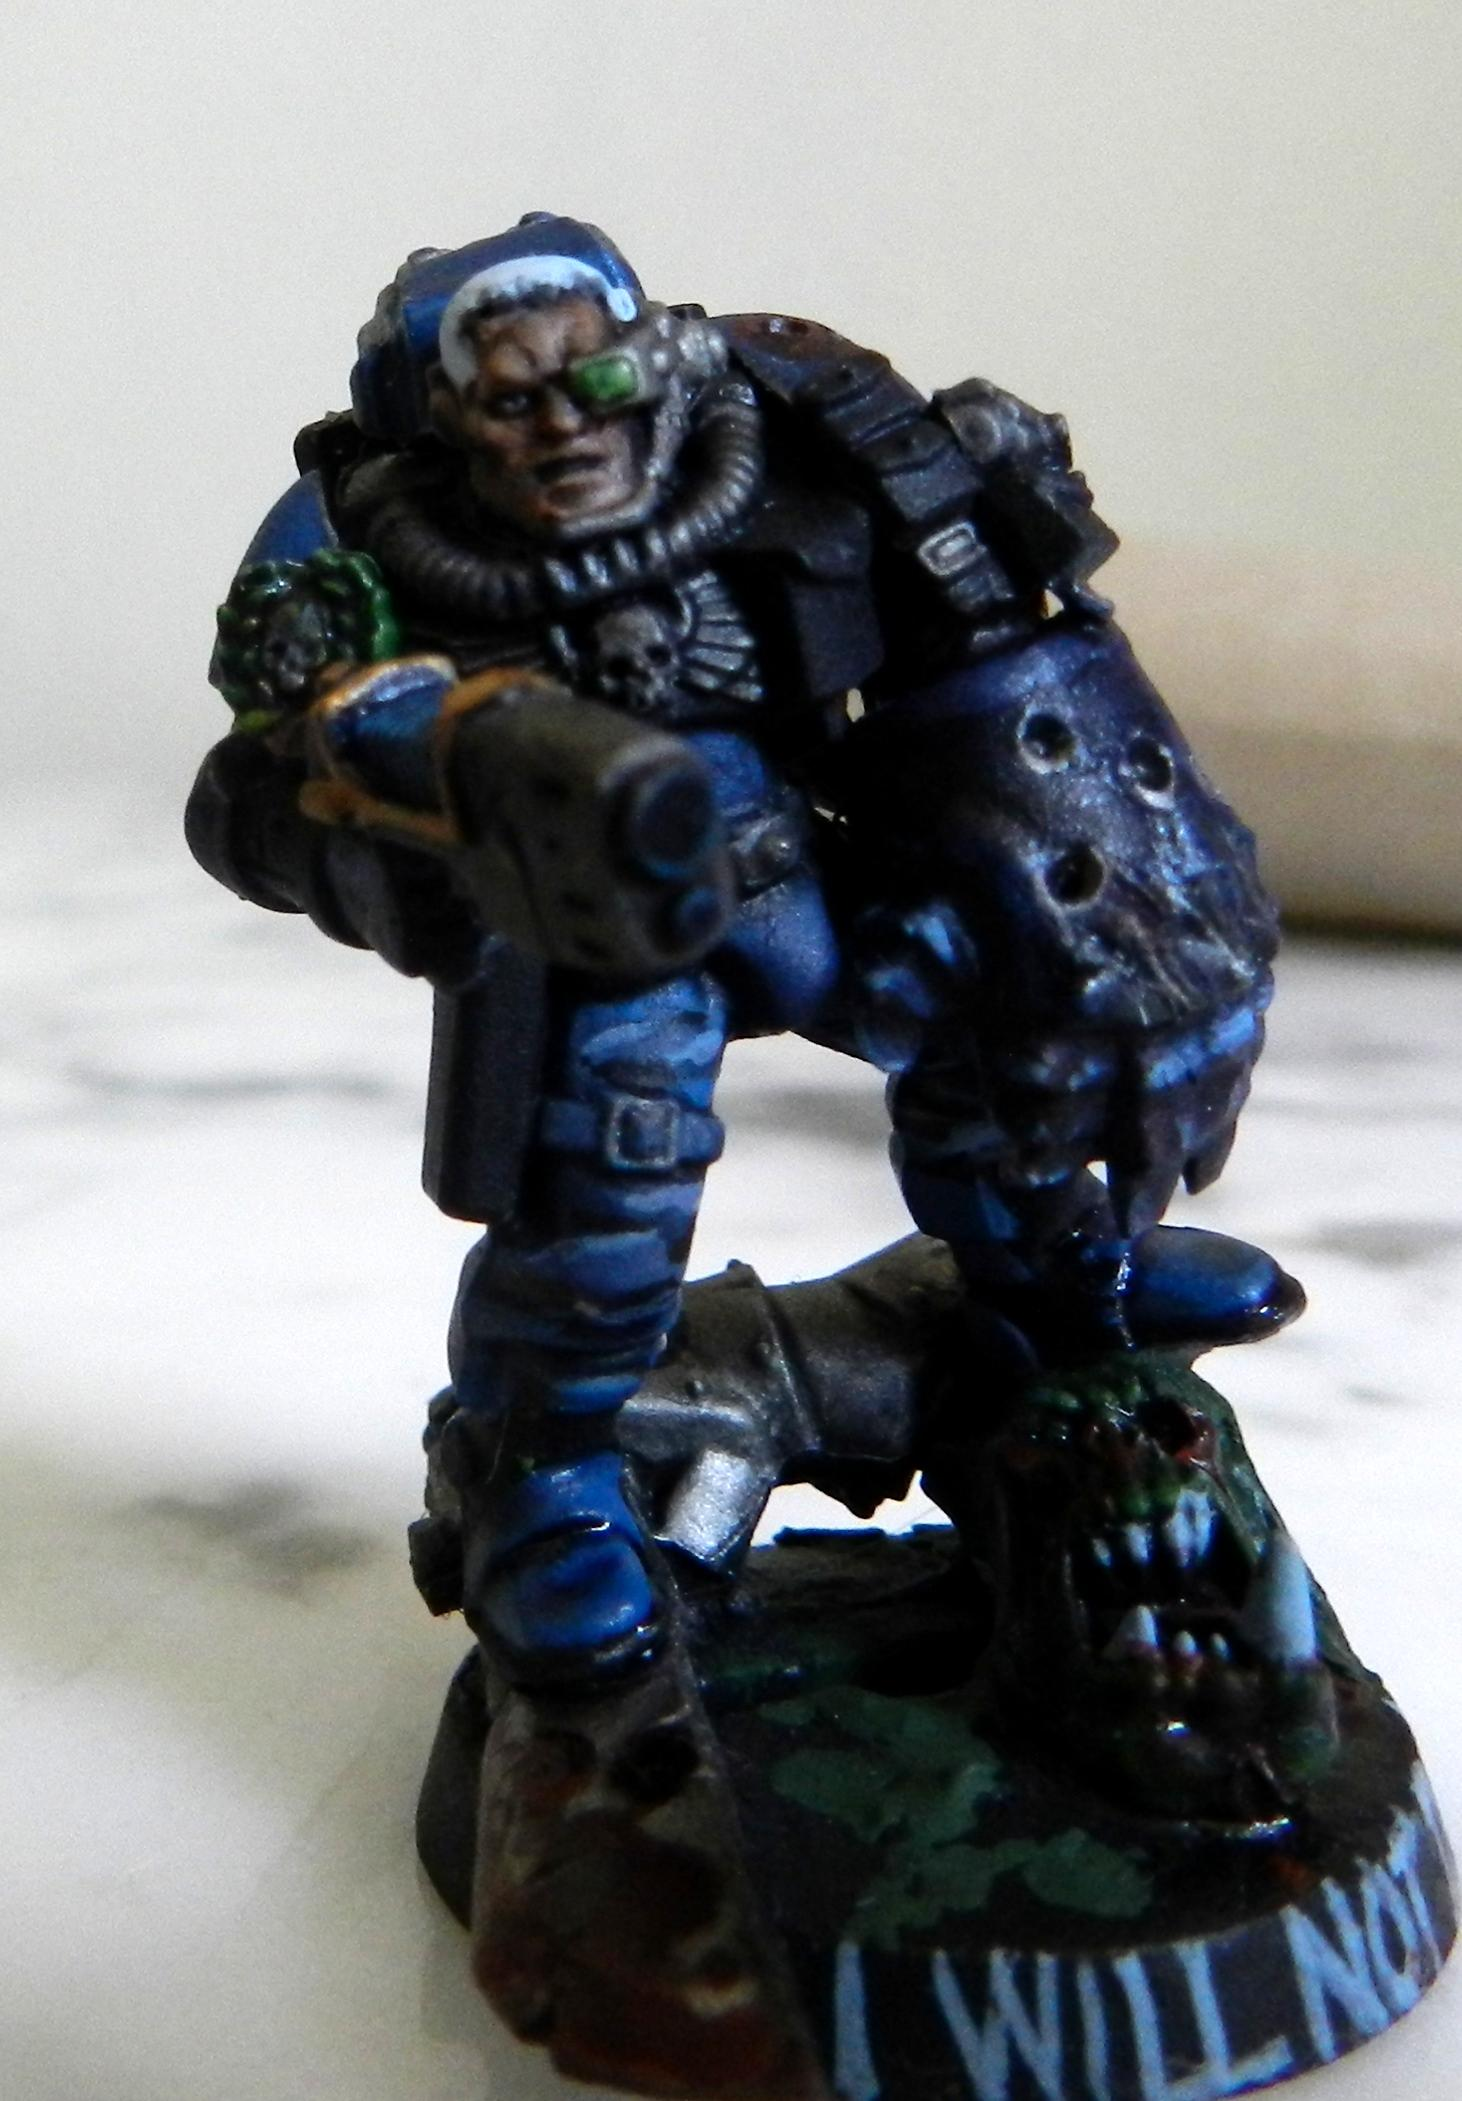 Adeptus Arbites, Cadians, Camouflage, Captain, Carapace, Carapace Armour, Commander, Company Command Squad, Conversion, Count As, Gears Of War, Gore, Grenadier, Grenadiers, Guardsmen, Headquarters, Imperial, Imperial Guard, Officer, Ork Abuse, Plasma Gun, Power Fist, Scar, Scouts, Urban, Warhammer 40,000, Work In Progress